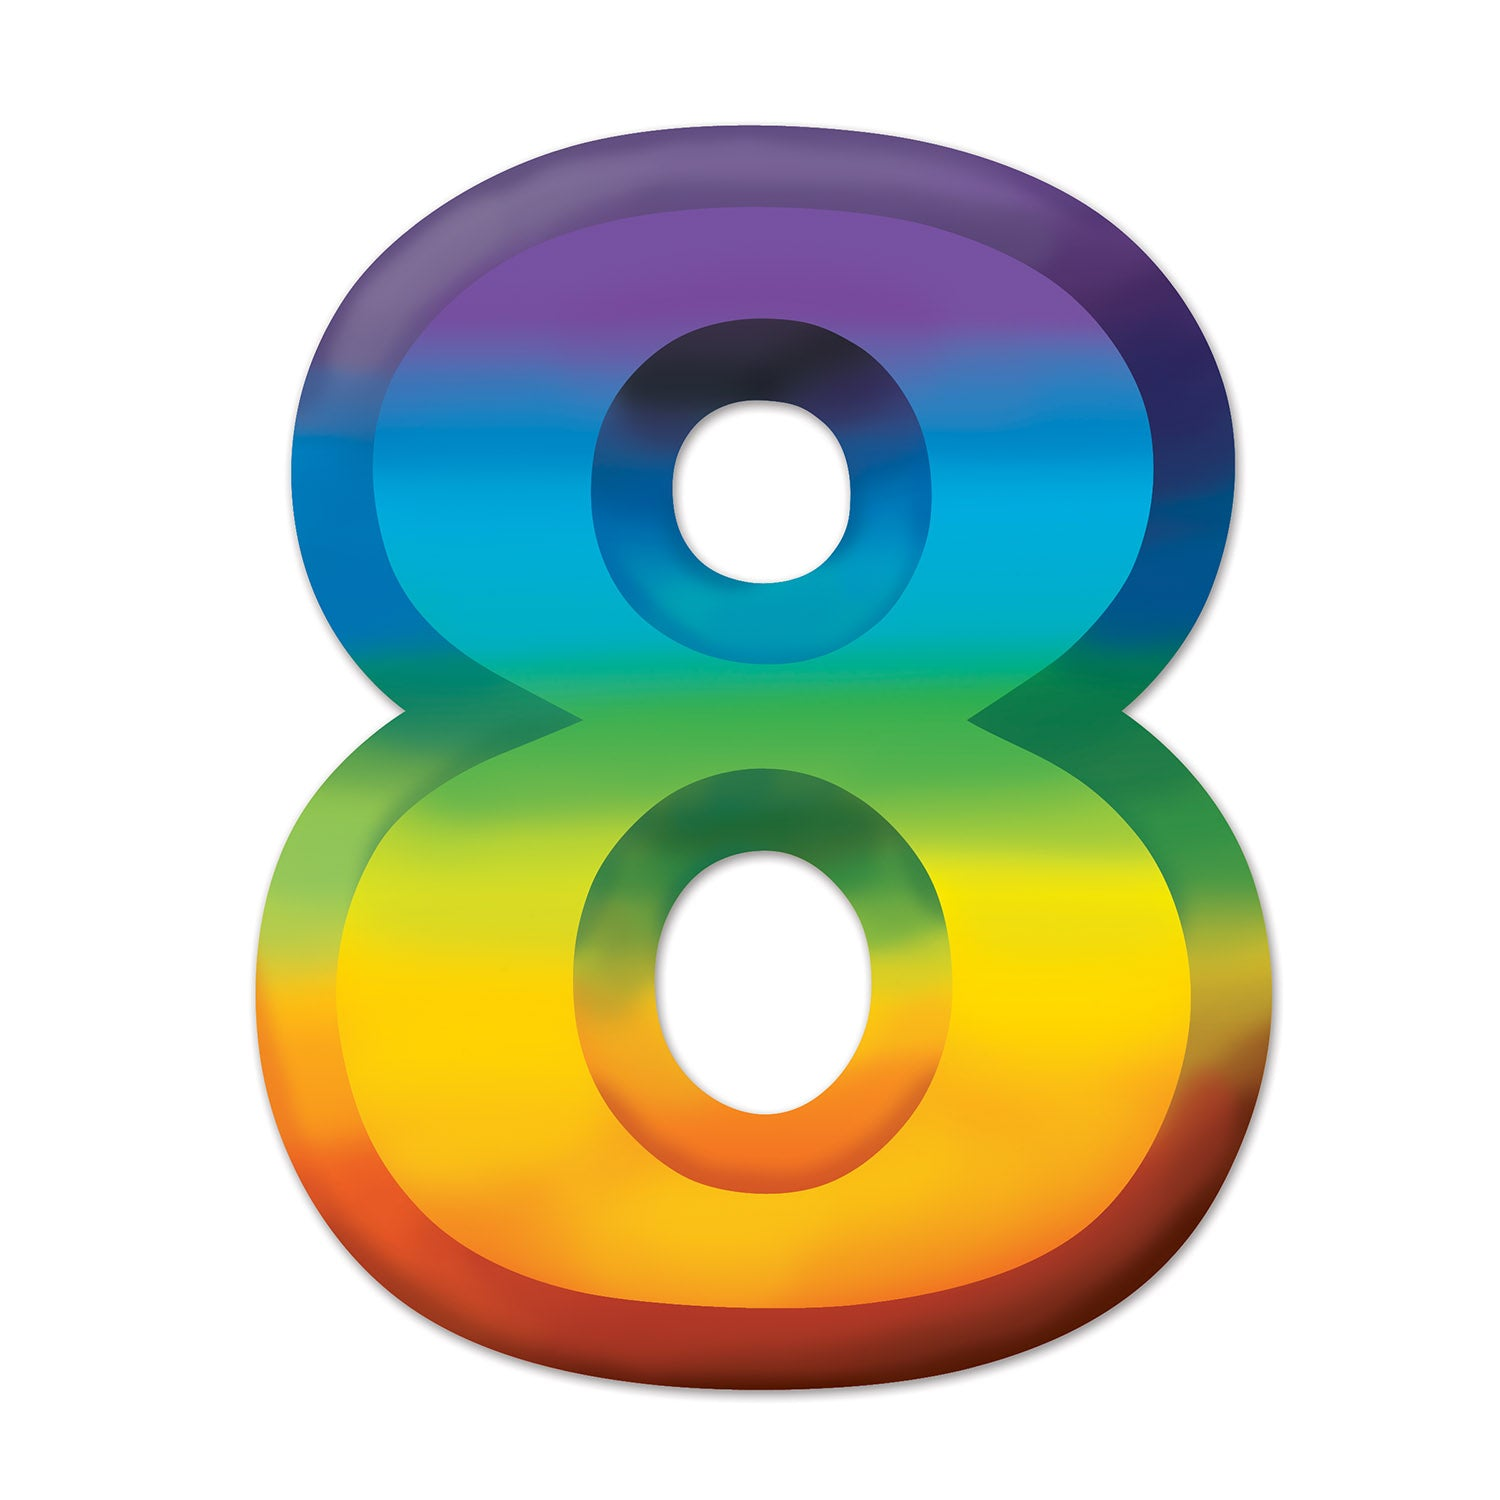 Multi-Color Plastic 3-D Number 8 by Beistle - Birthday Party Supplies Decorations